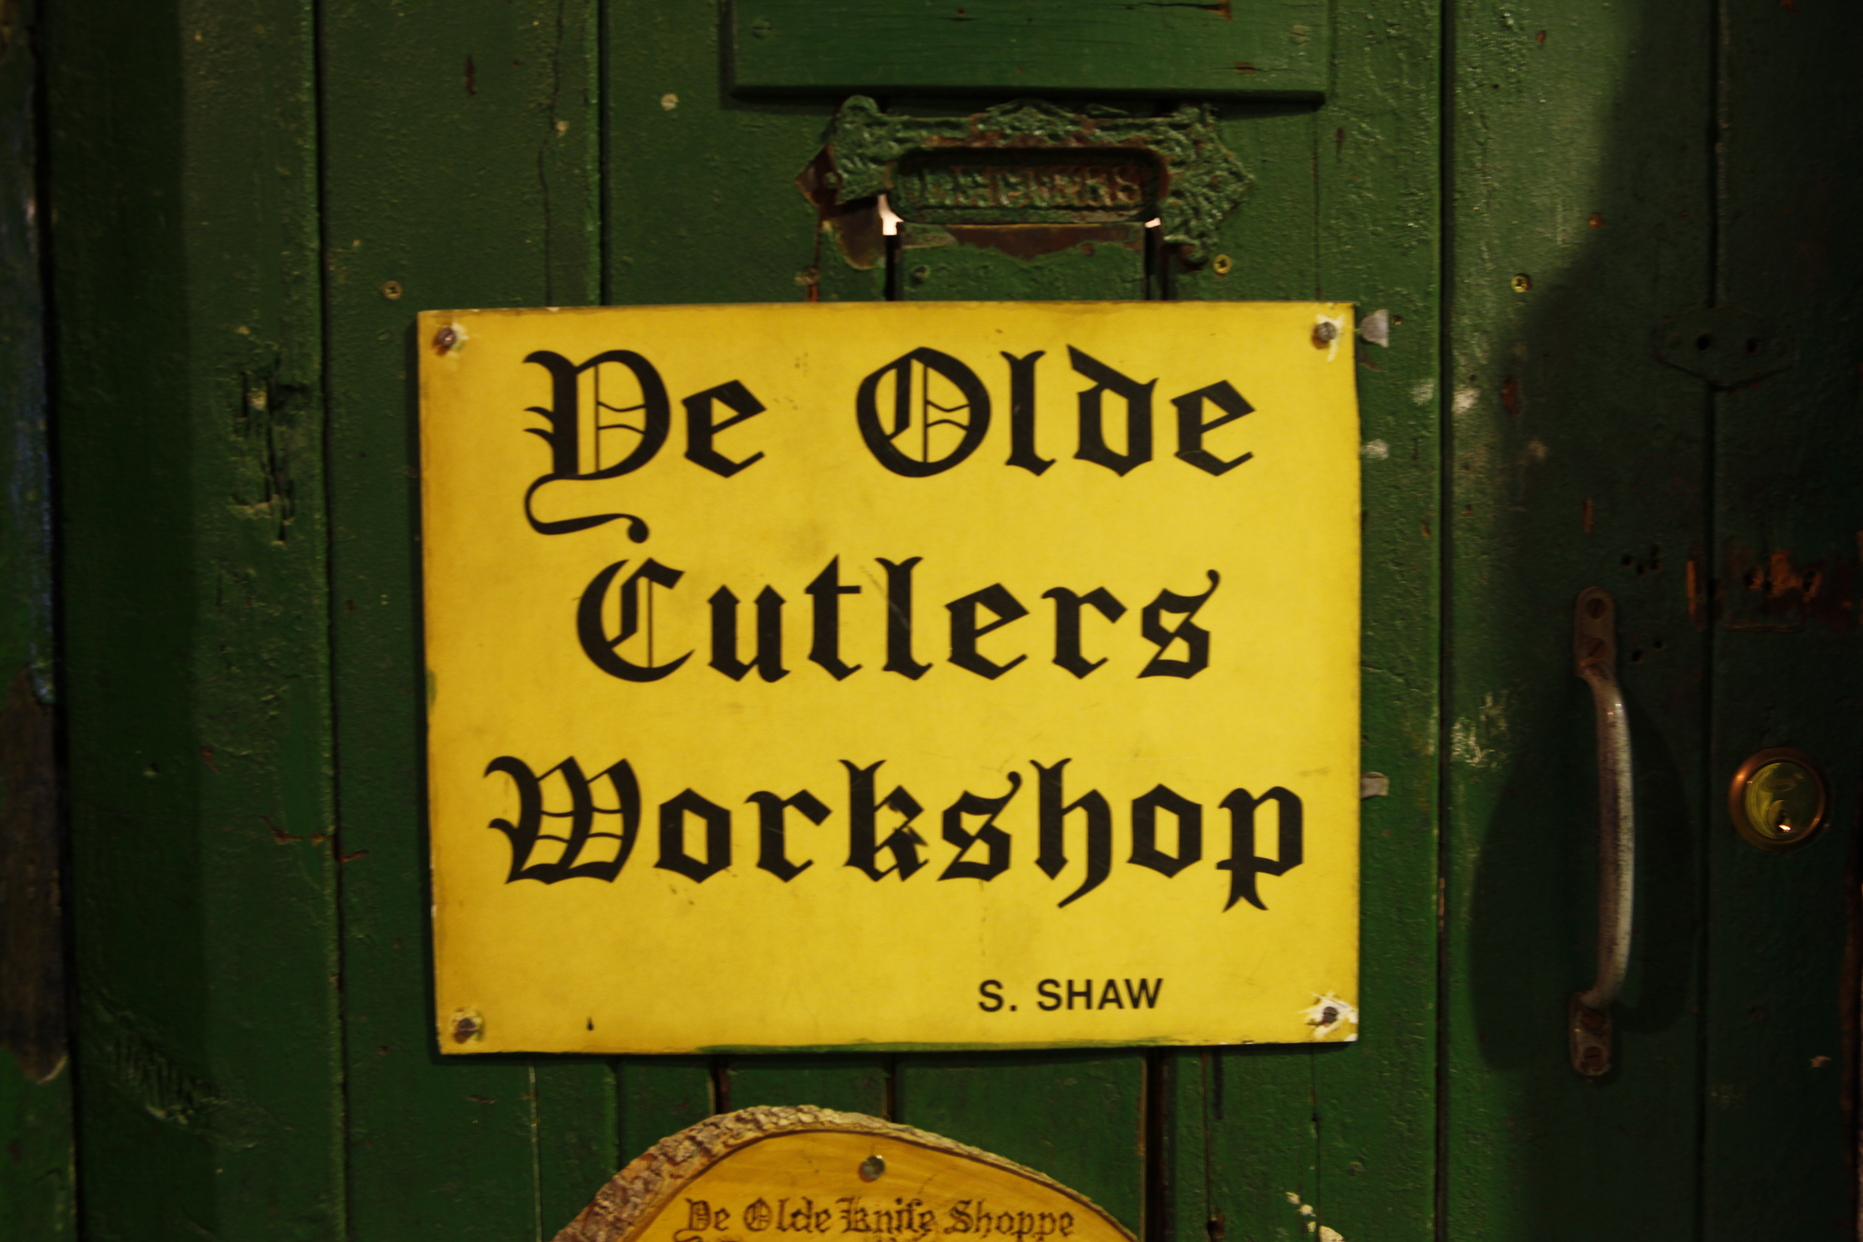 Stan Shaw's Workshop